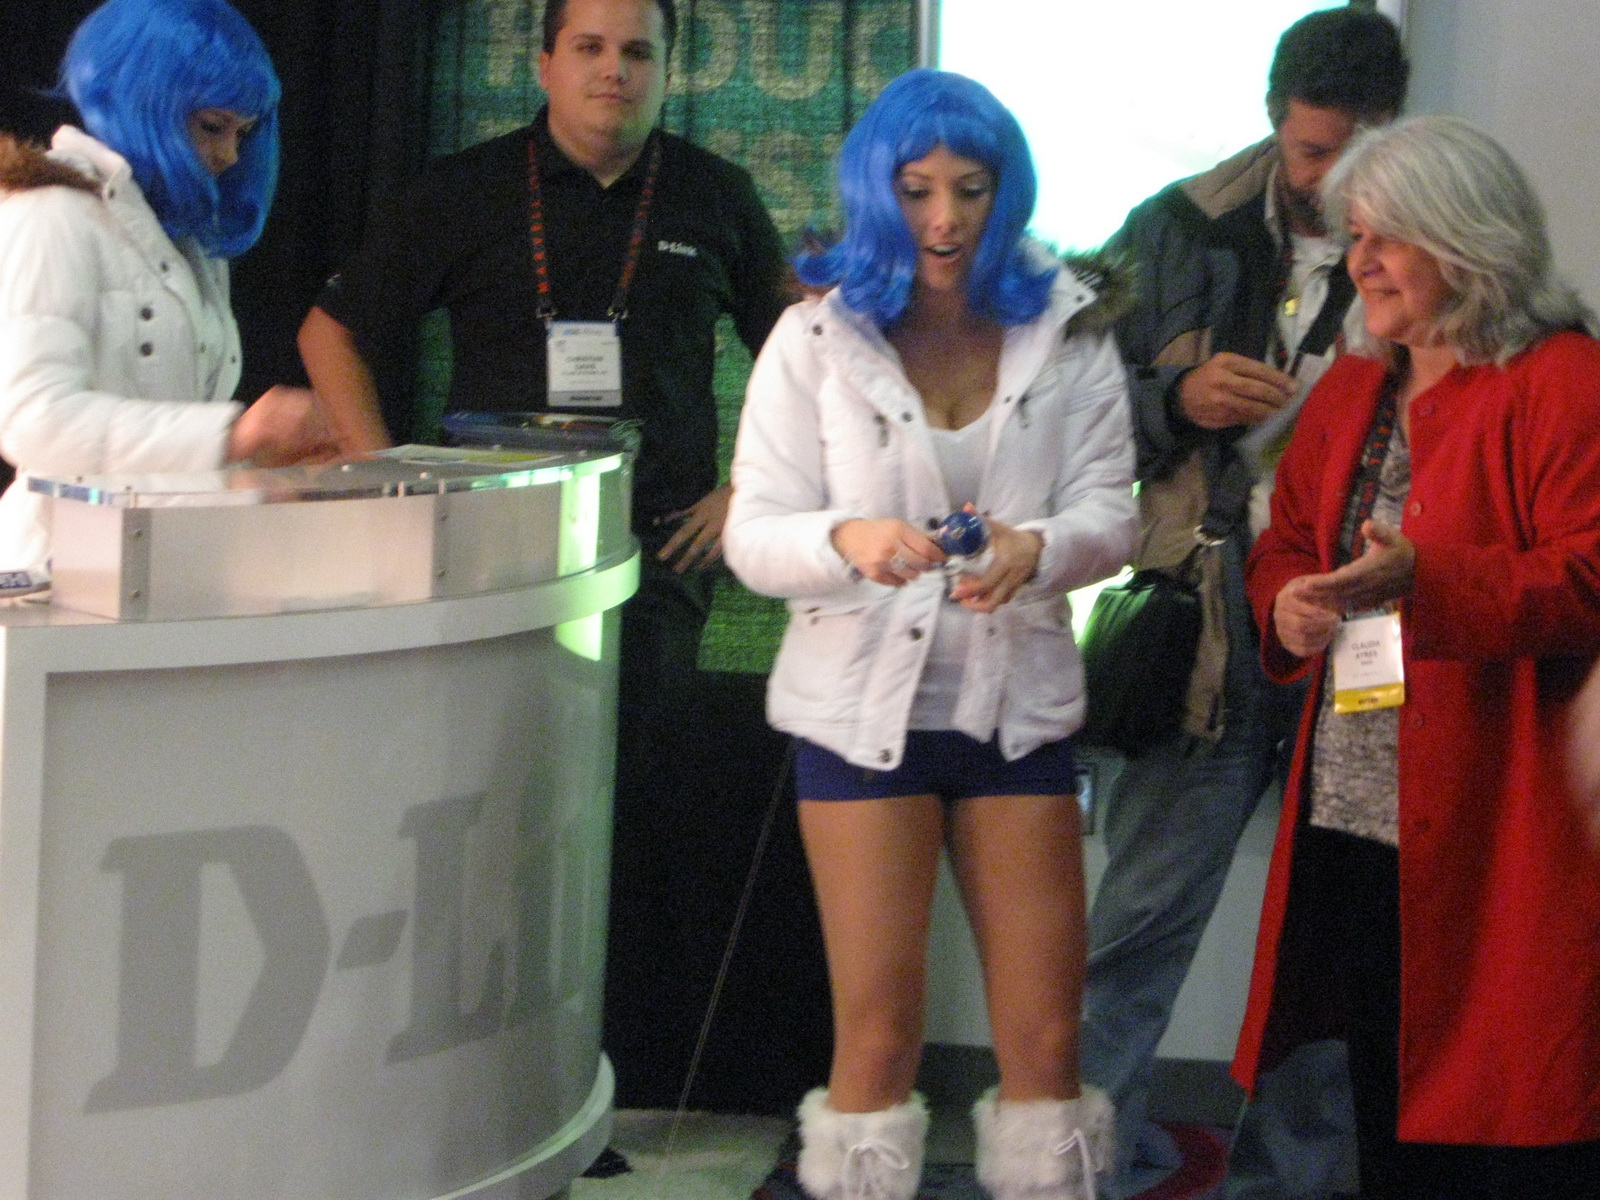 CES 2011 D-Link Booth Babes